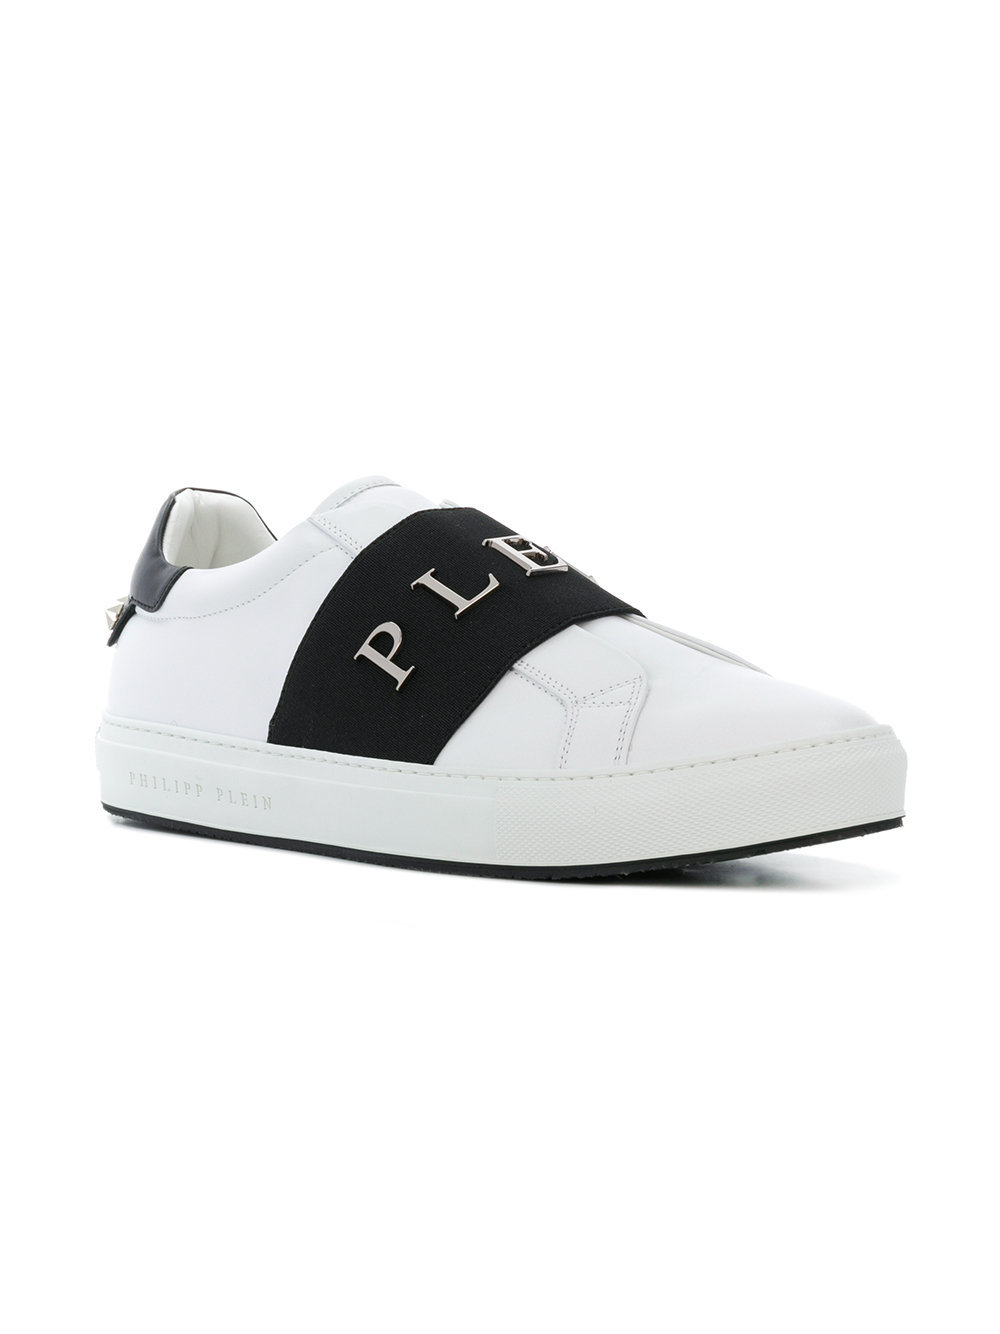 Low Sneakers Philipp To How amp; Wear Logo Top Plein Where Front Buy 4qU1wZ